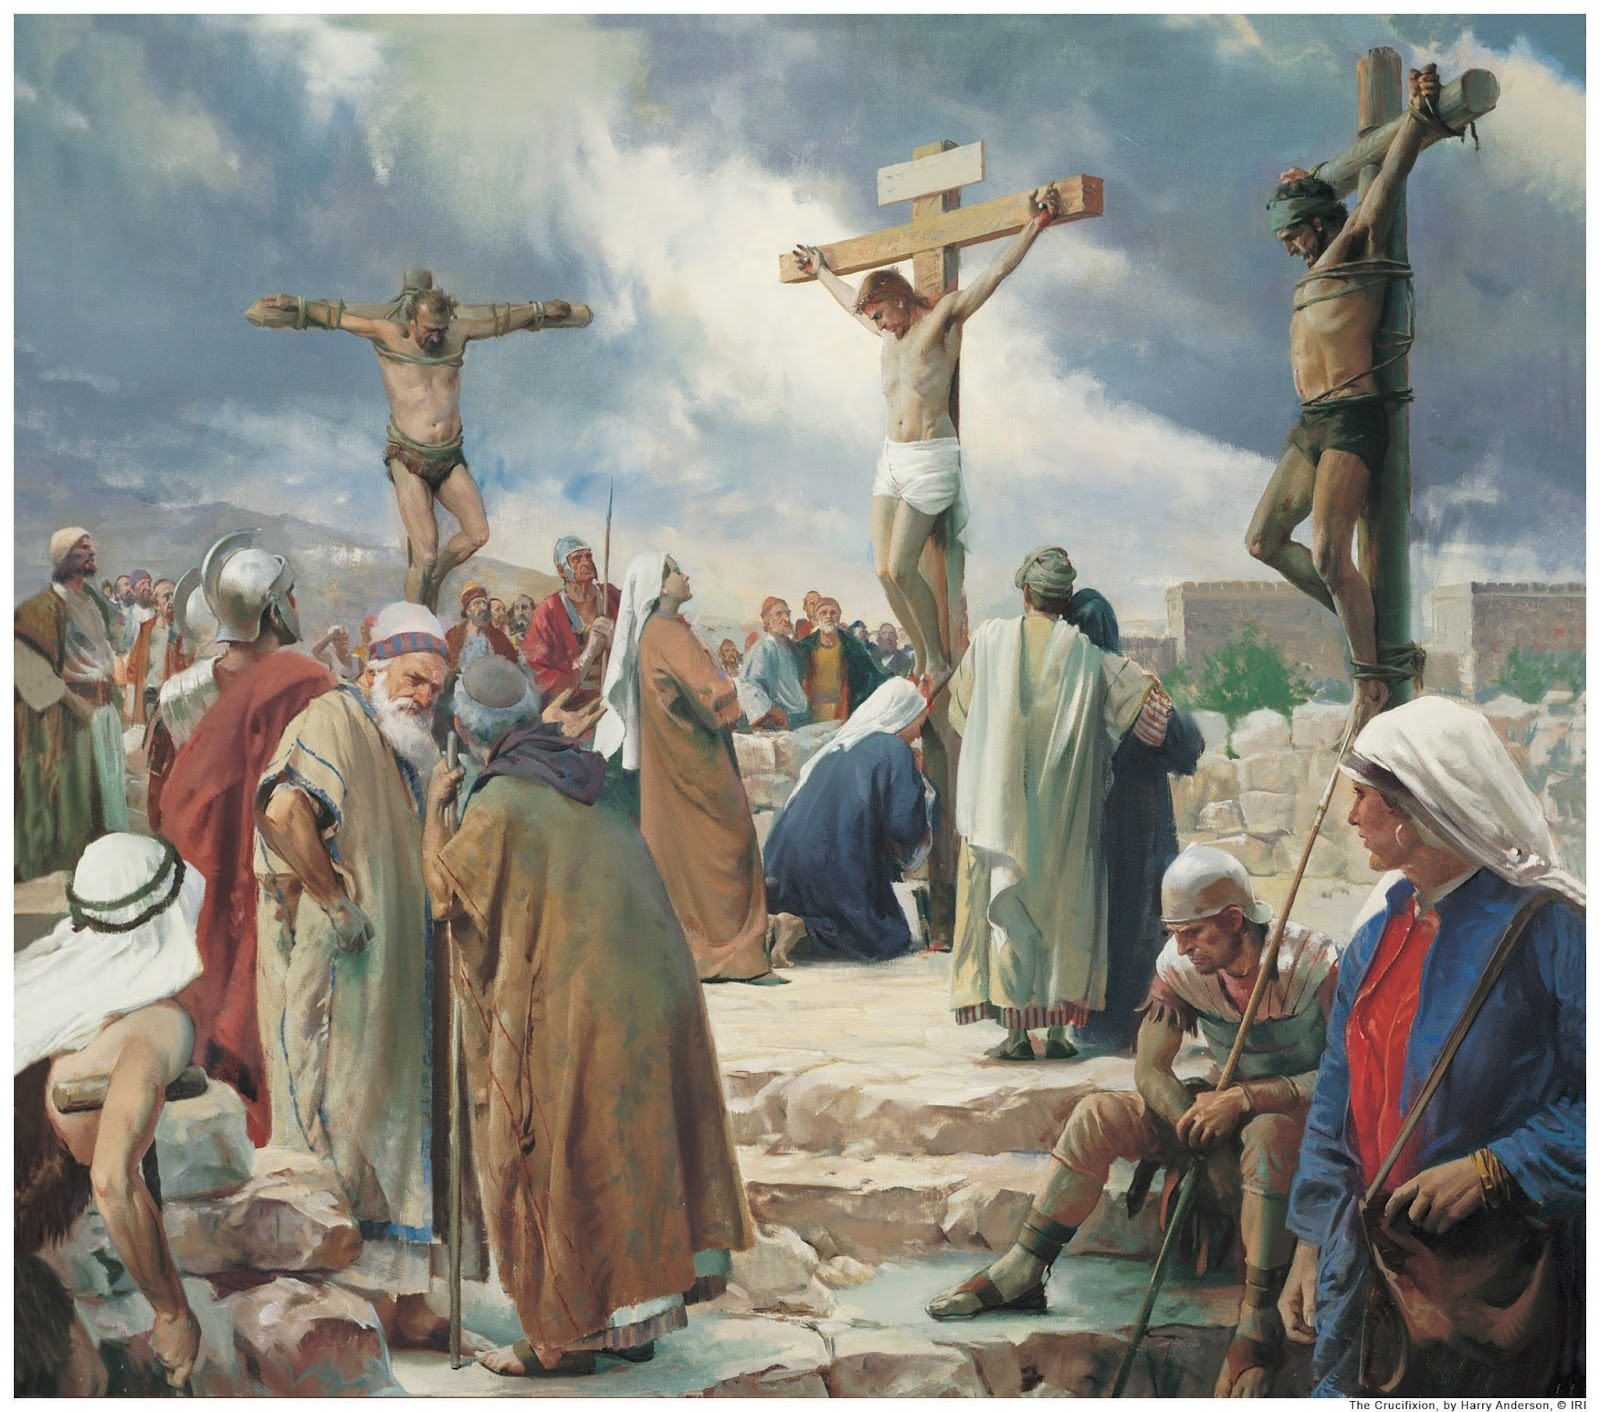 The gospel involves Jesus' death on the cross as the sin offering to fulfill the Law's righteous requirement (Romans 8:3-4; Hebrews 10:5-10).